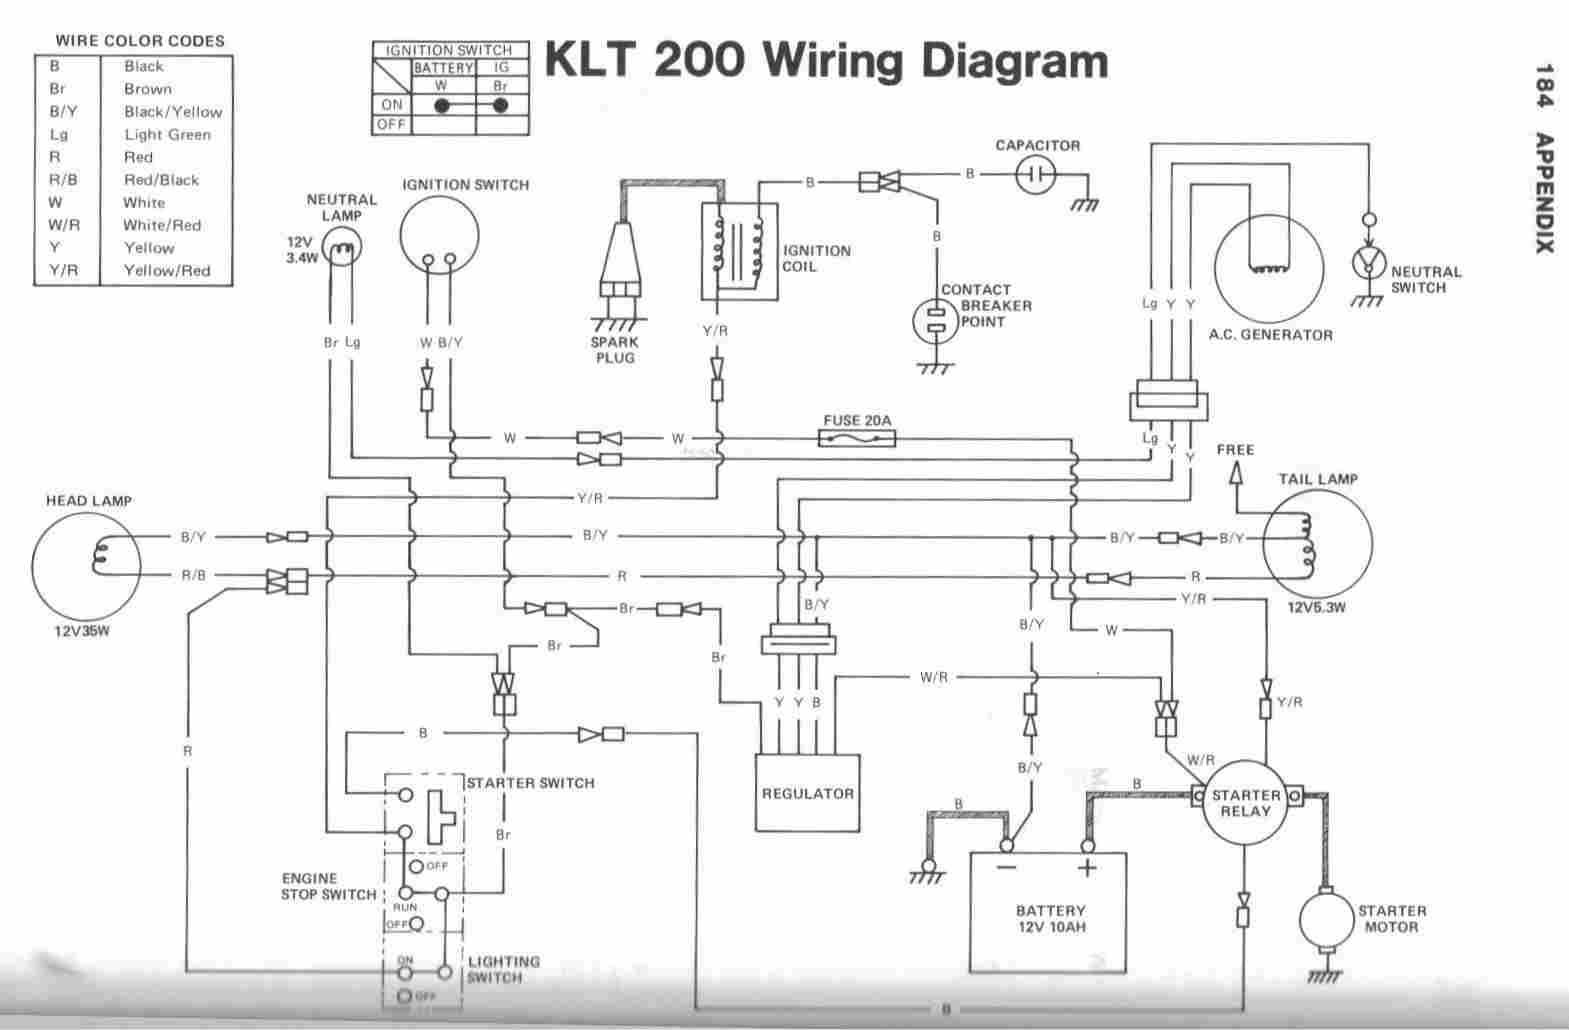 2869034594ce054a636782e5c44b61b4 residential electrical wiring diagrams pdf easy routing cool electrical wiring diagrams at n-0.co